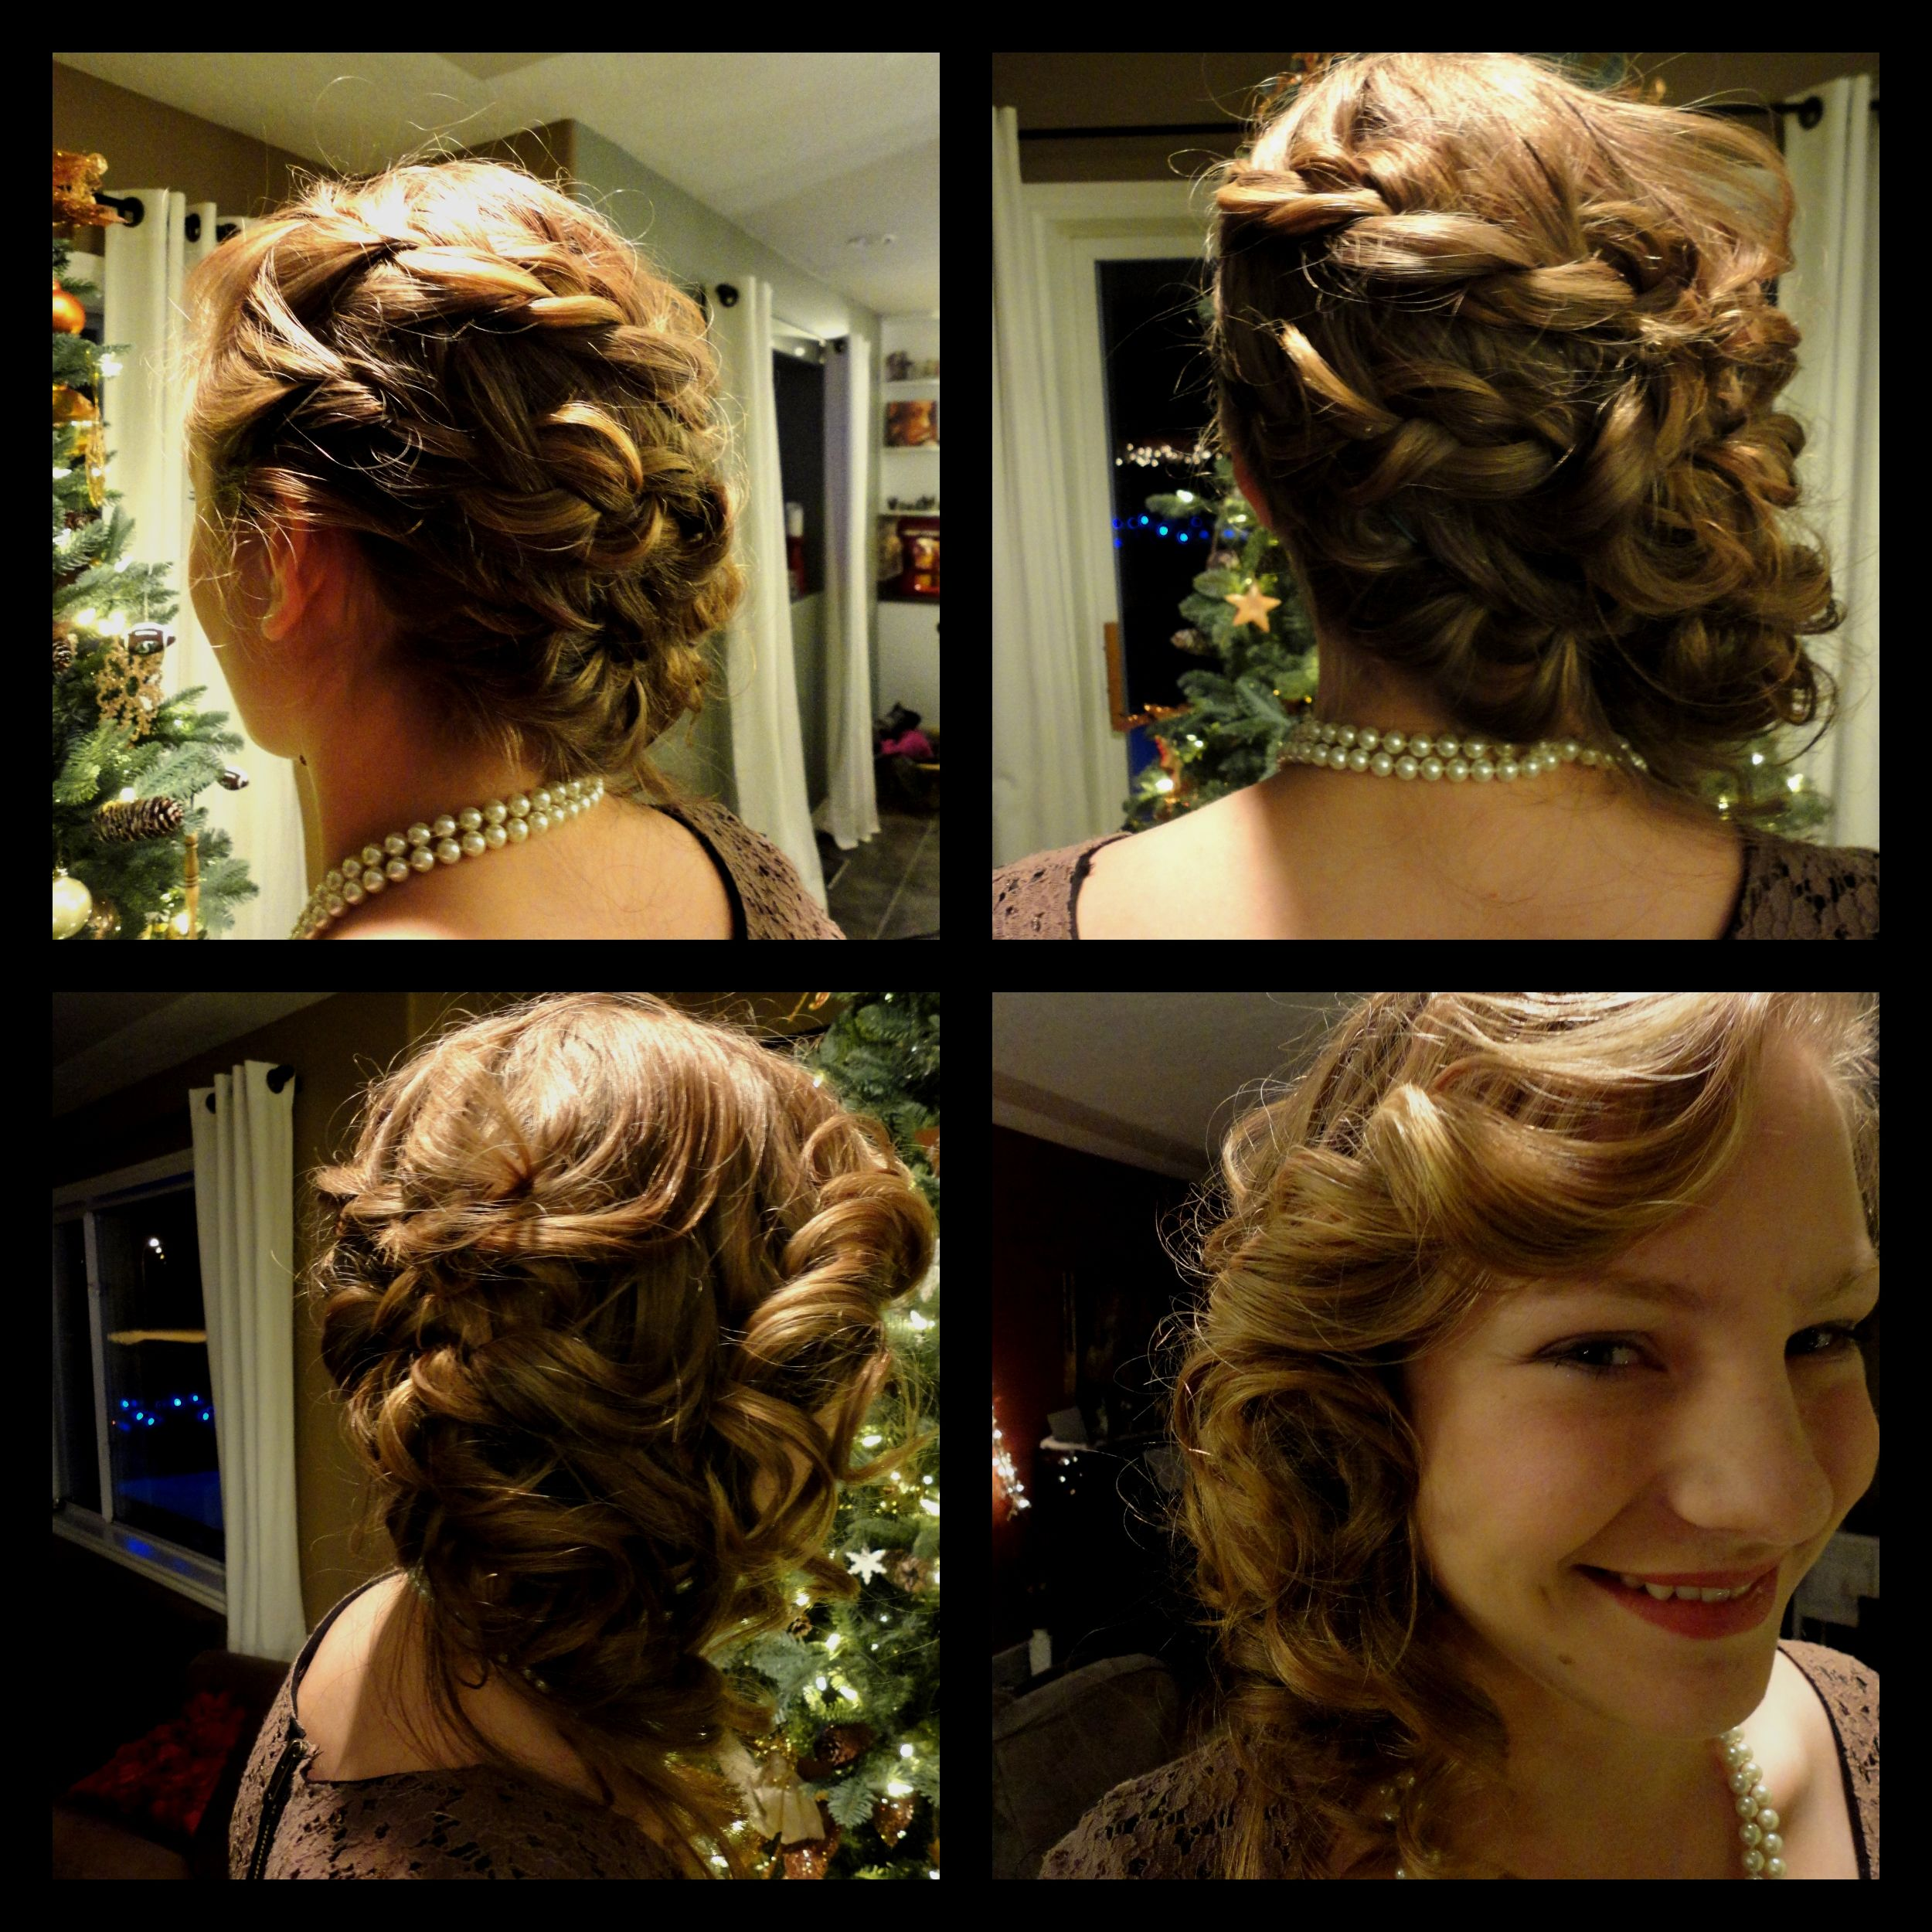 No howto link winter formal hair curled three braids from